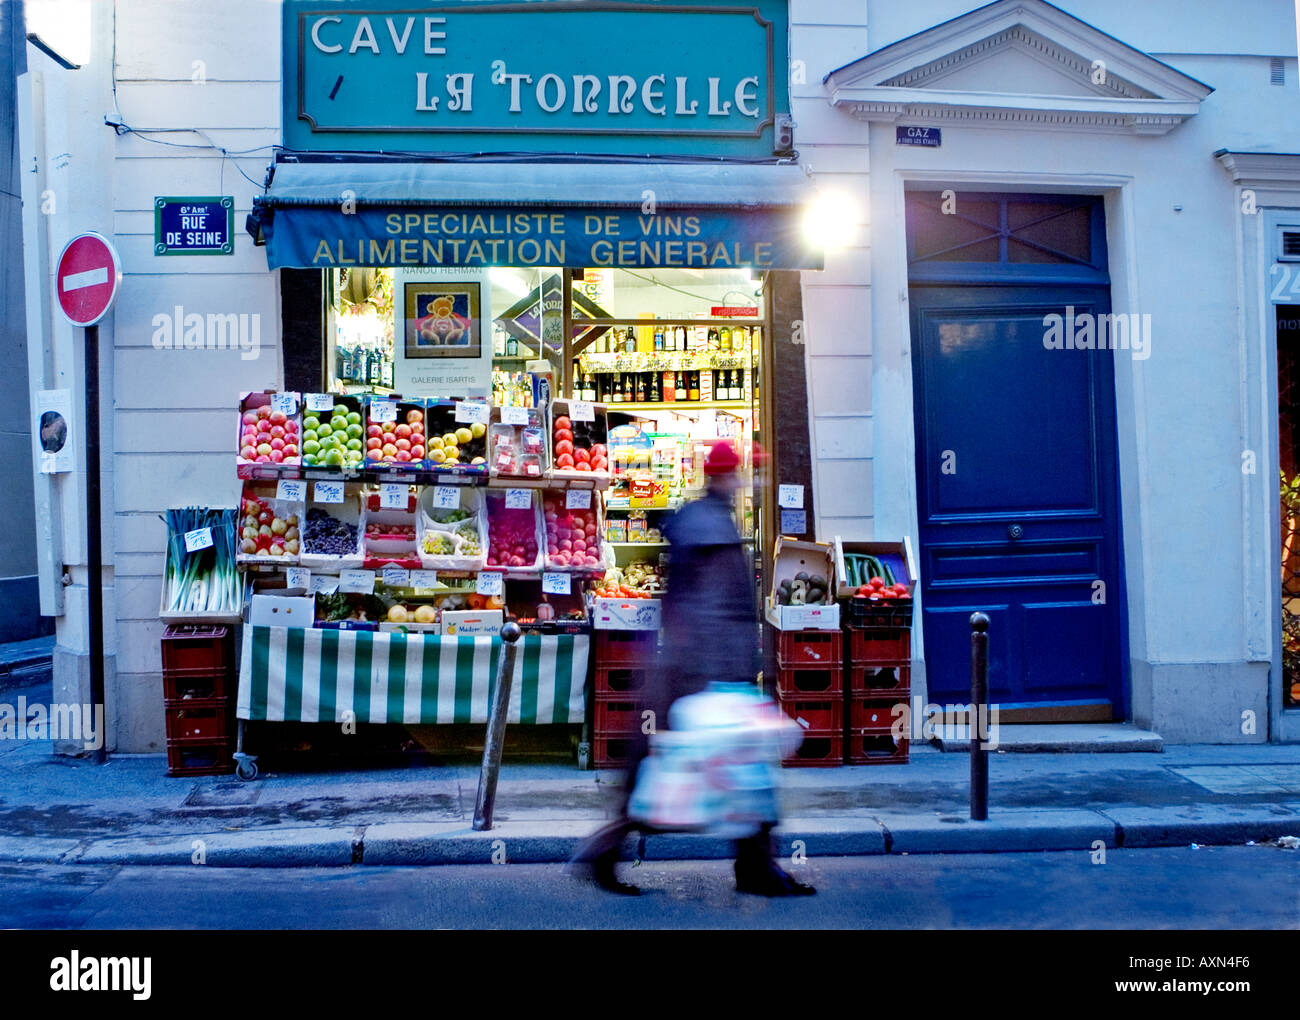 Paris France, Small Business General Store 'Grocery Store', Arab, Night, Street Scene Open Late - Stock Image